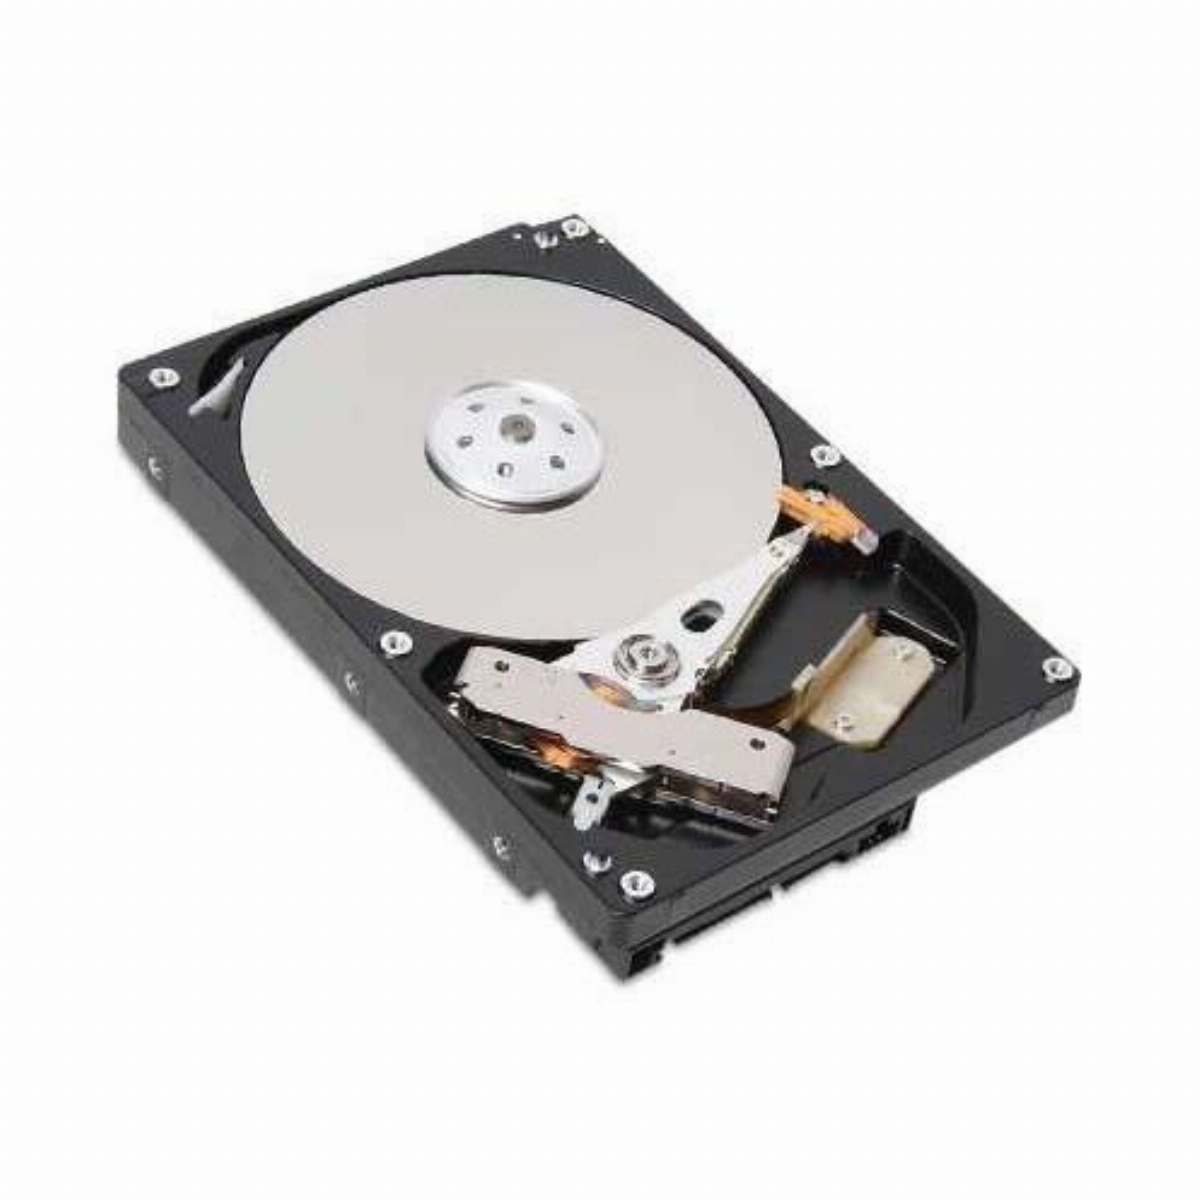 """Хард диск TOSHIBA DT01 3TB 3.5"""" 64MB cache 7200rpm"""